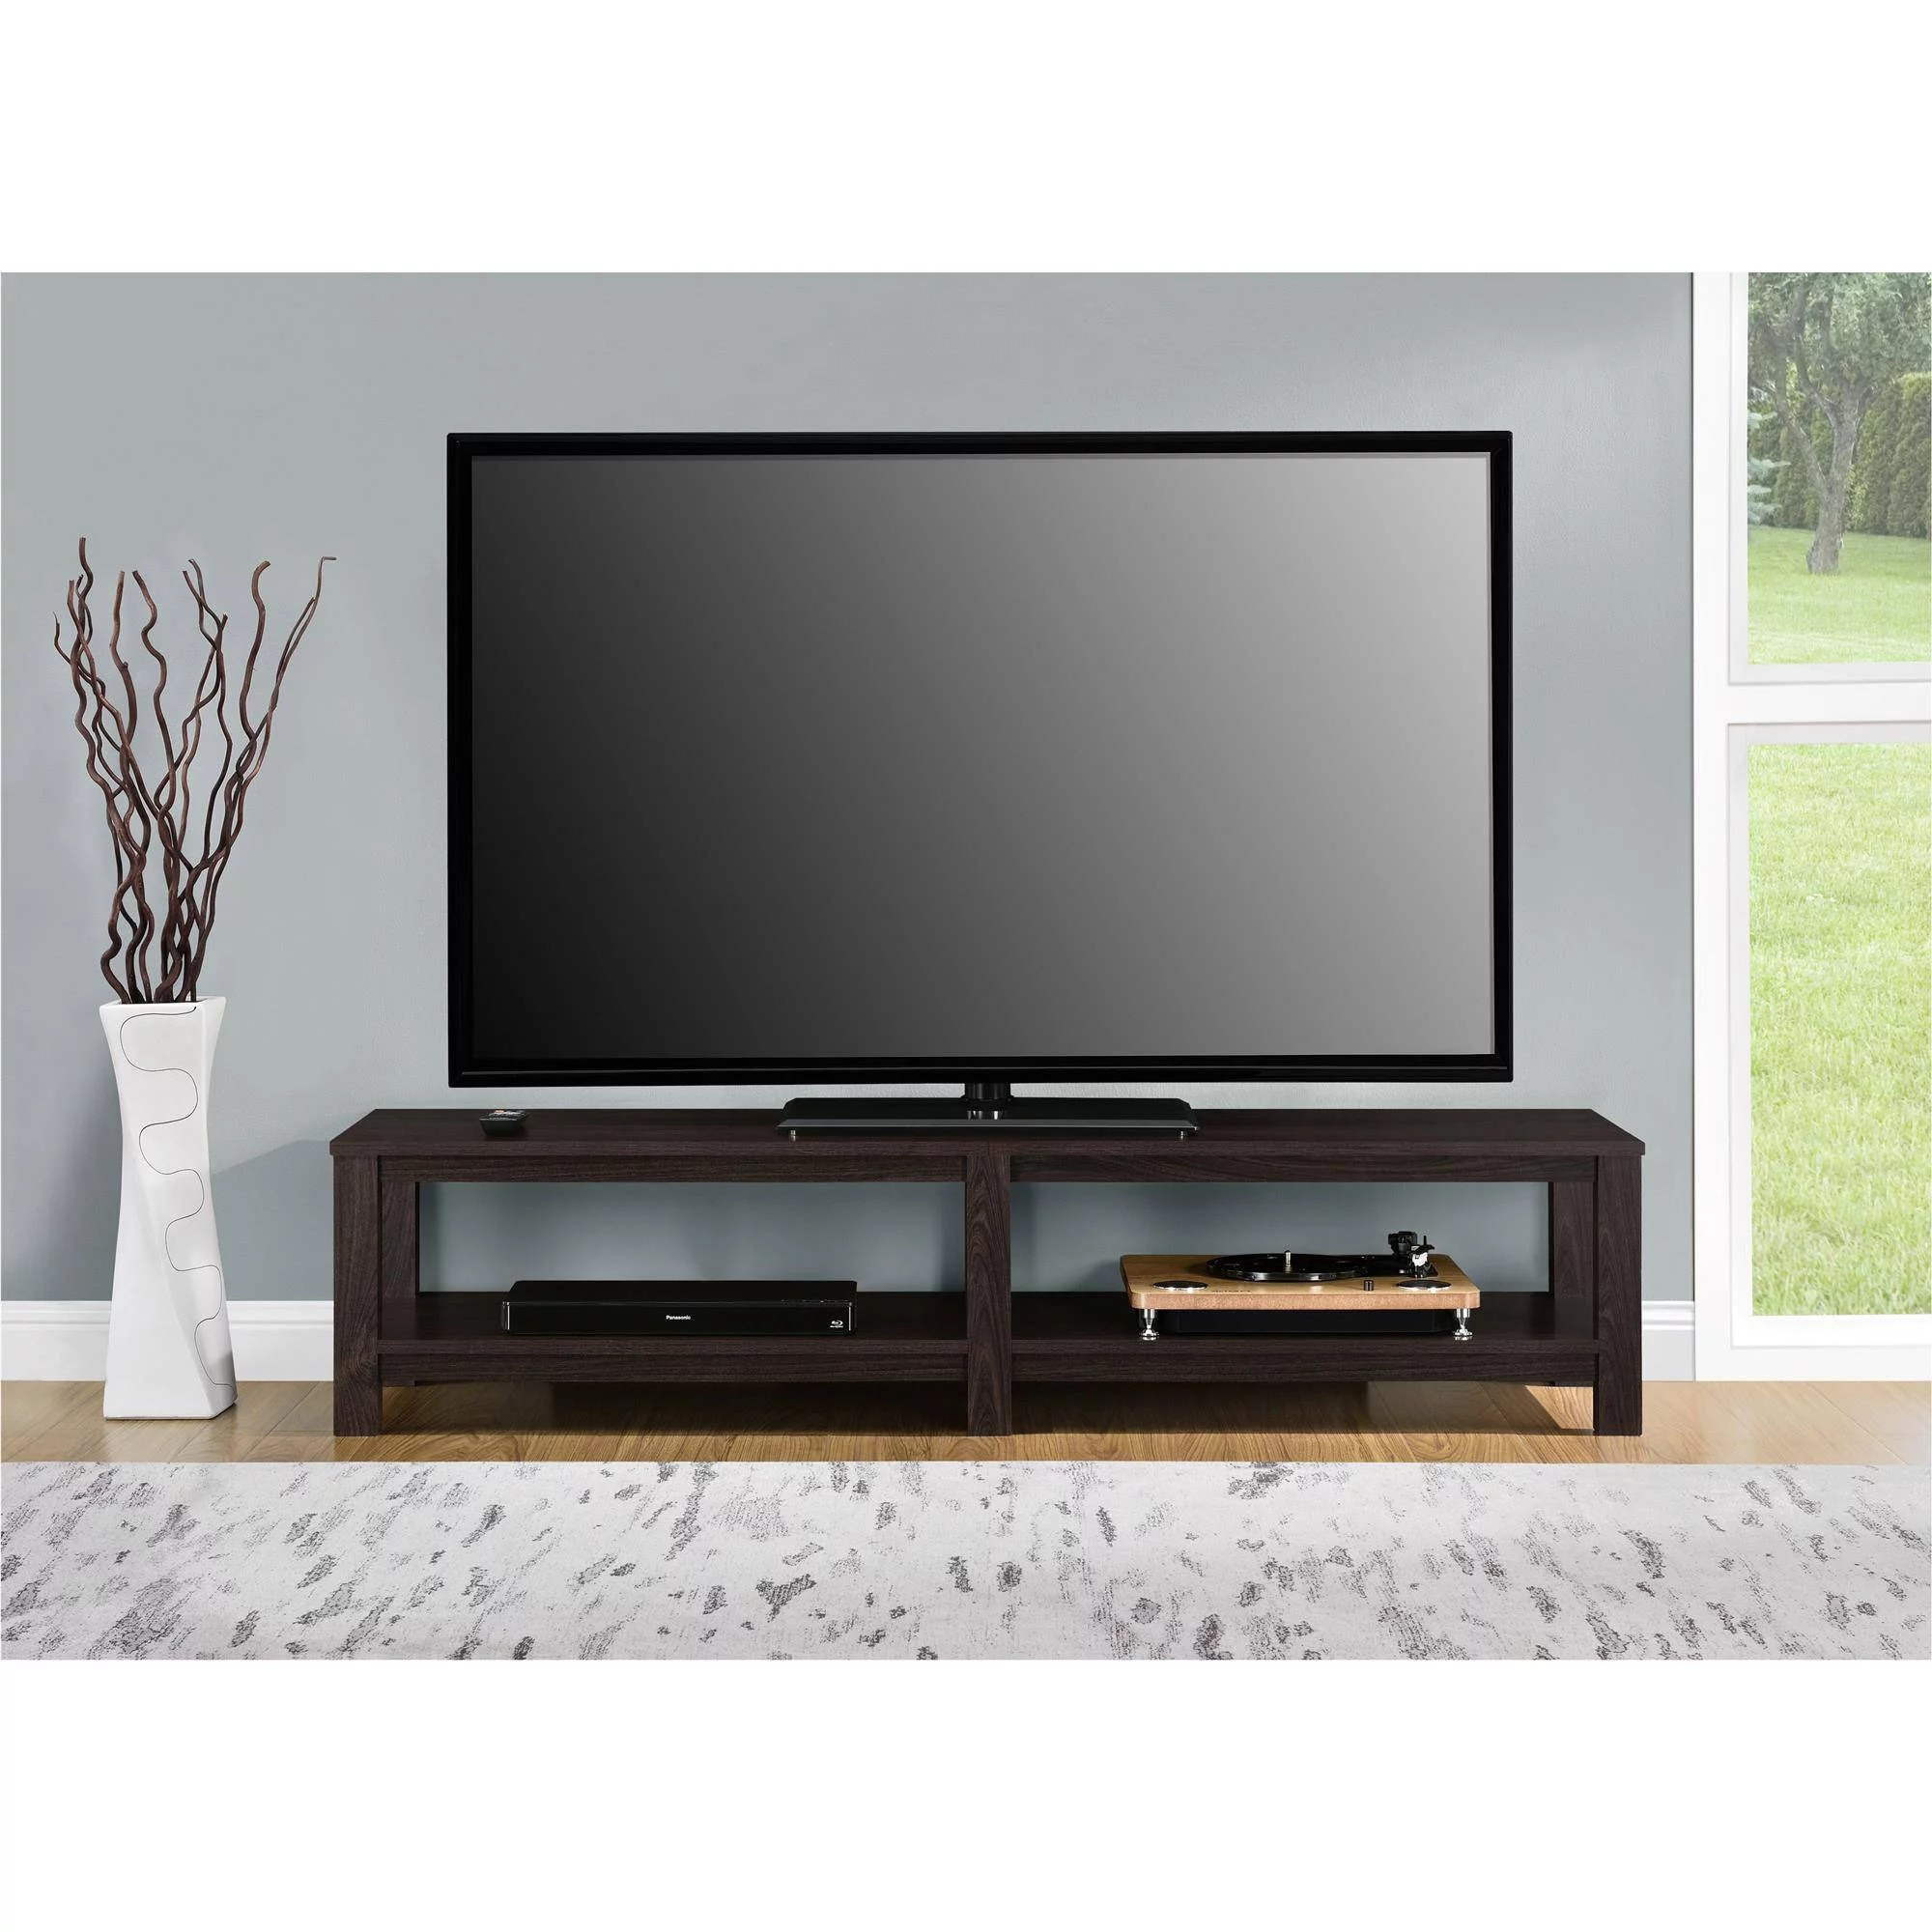 65inch Tv Dimensions Tv Stand 65 Inch Flat Screen Entertainment Media Home